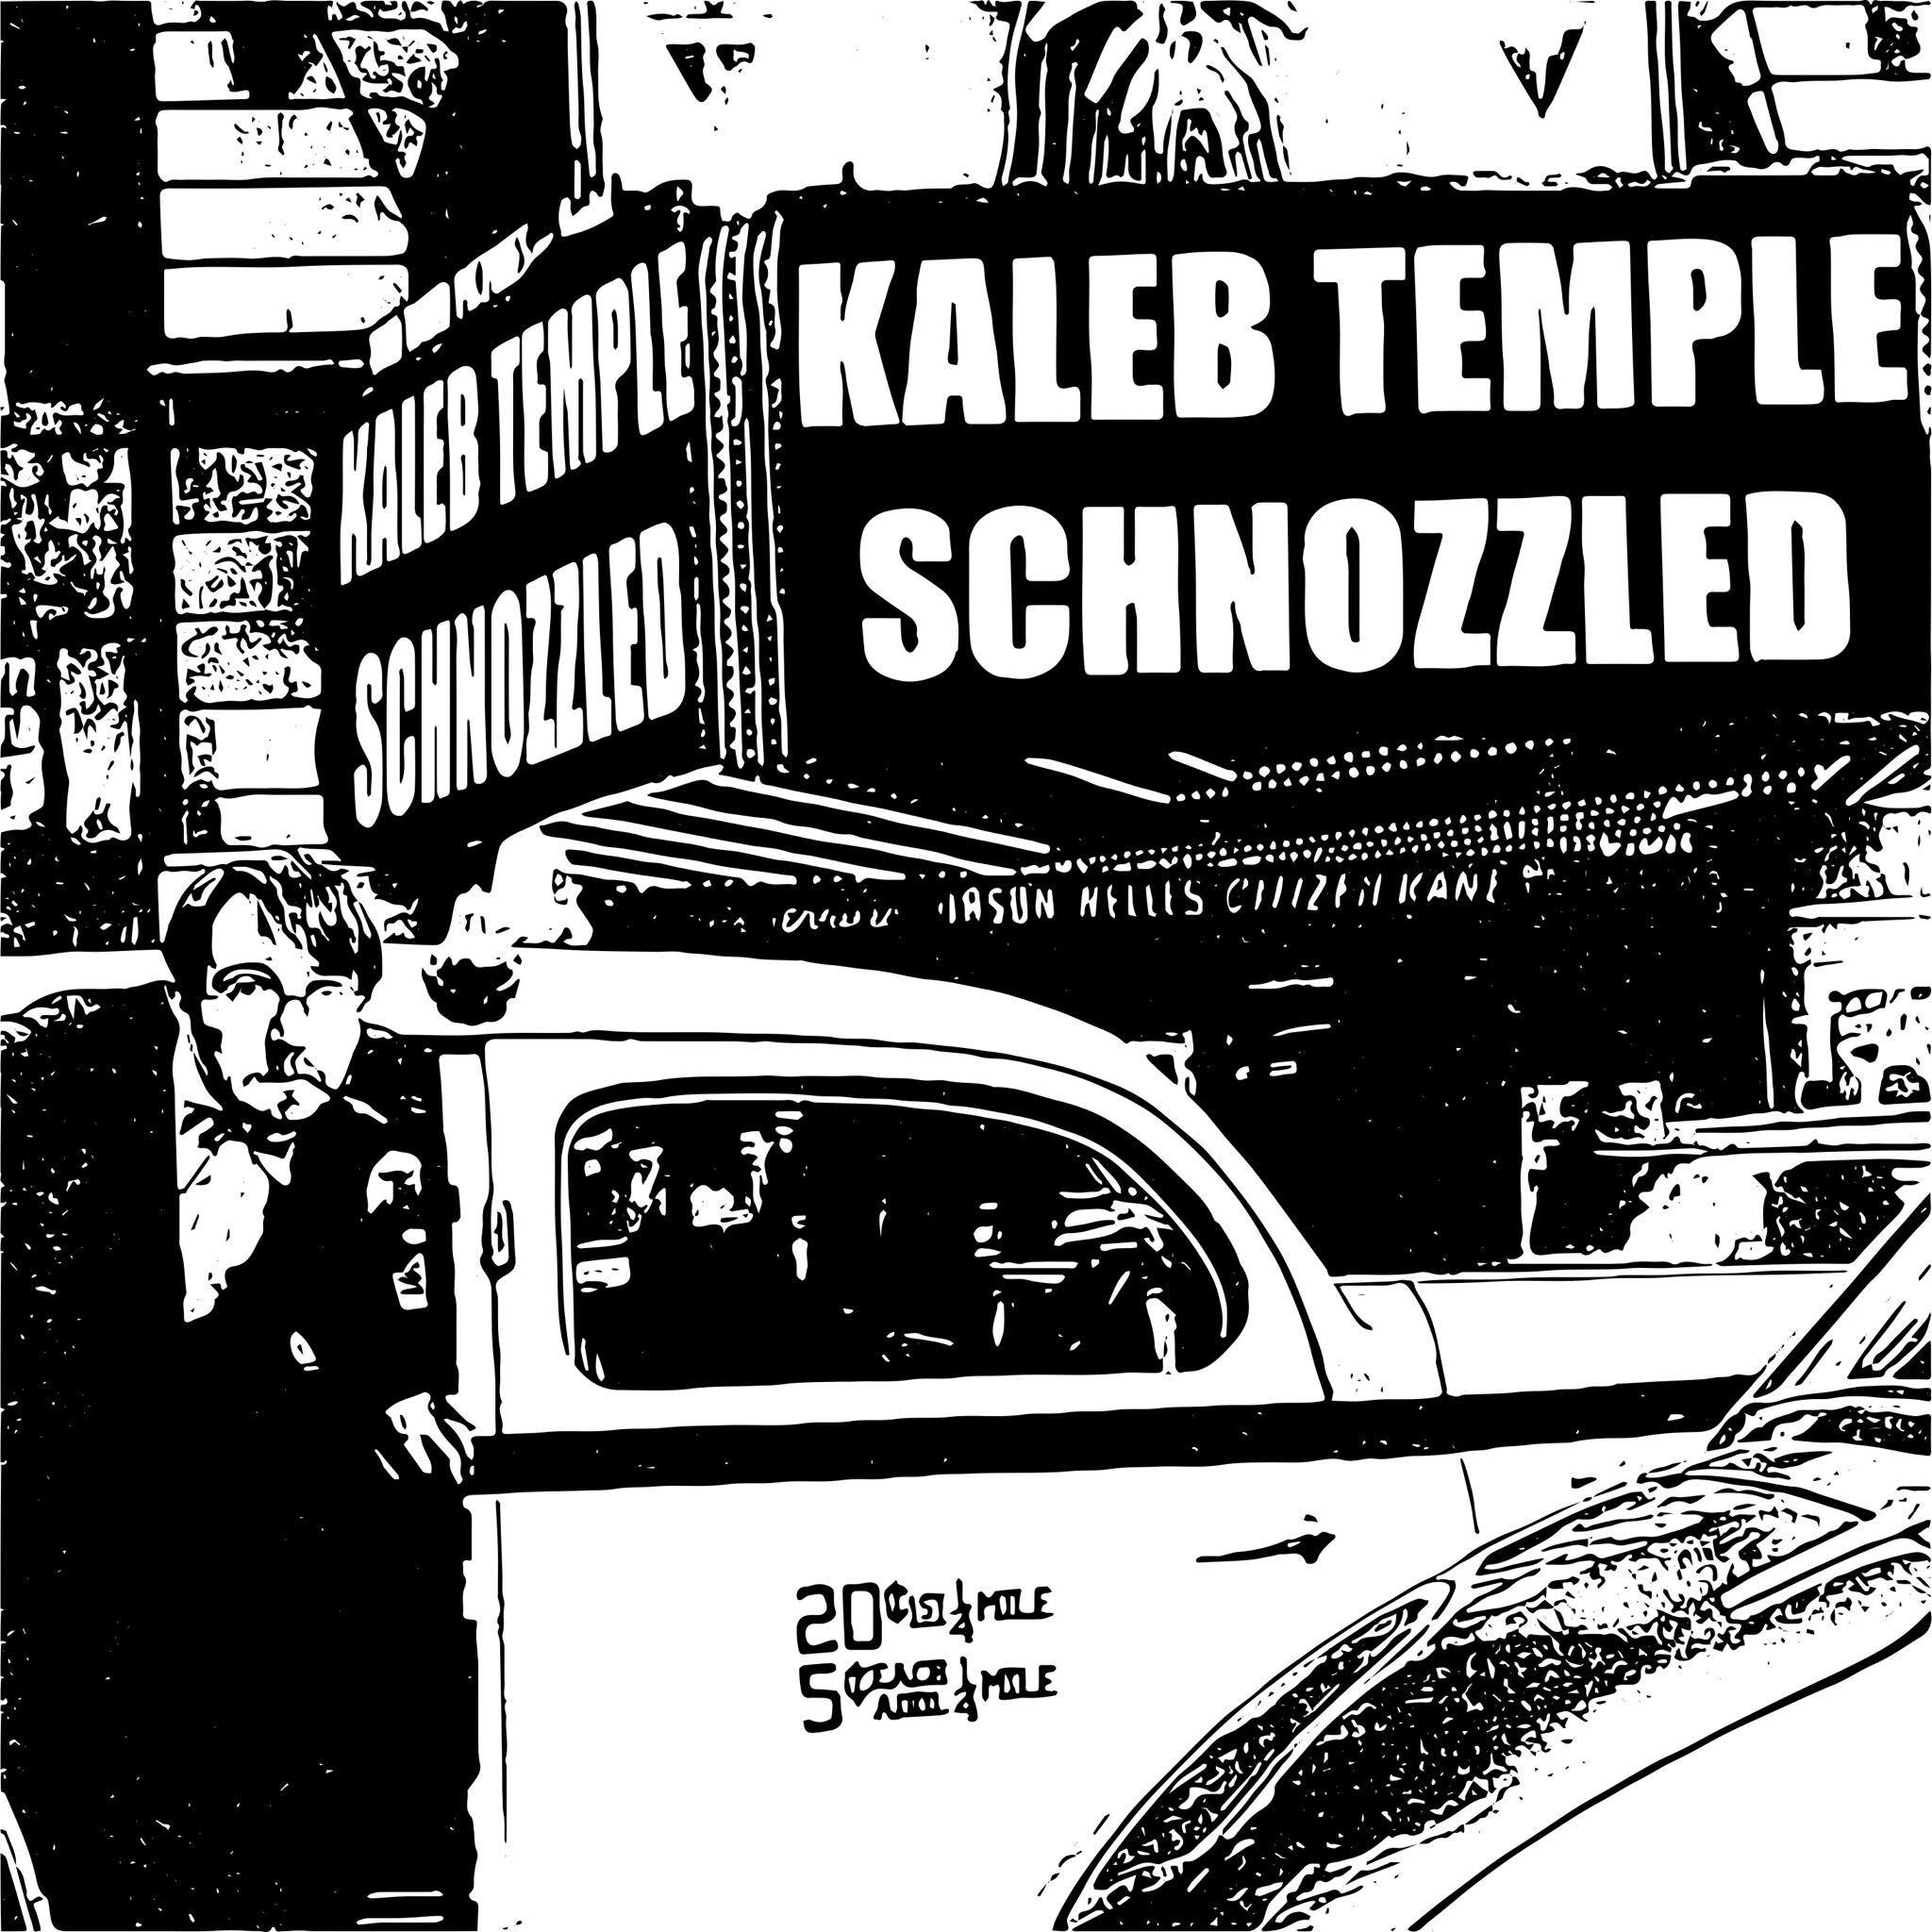 Promo graphic for the California premiere of SCHNOZZLED, September 23rd, 2015